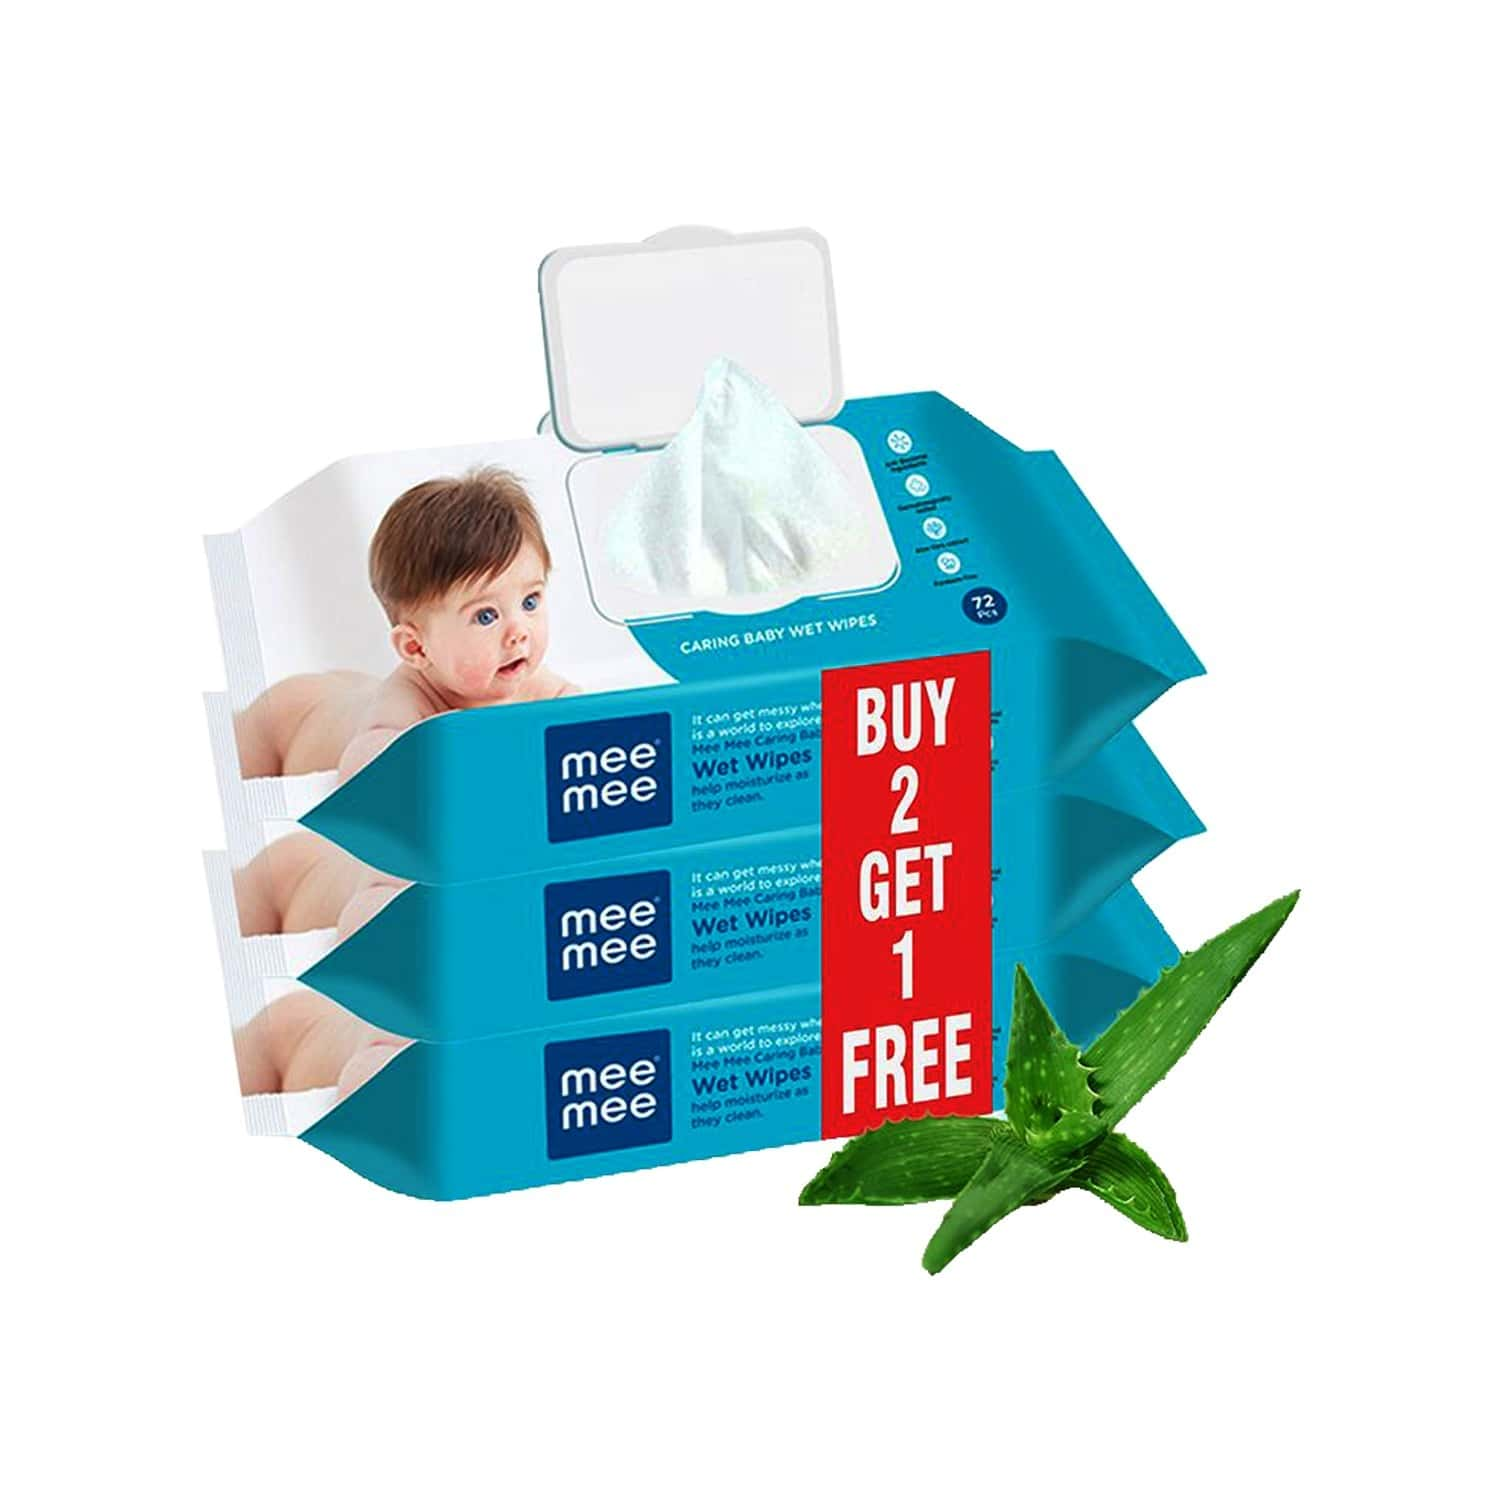 Mee Mee Caring Baby Wet Wipes With Lid, 72 Pcs (aloe Vera, Pack Of 3)